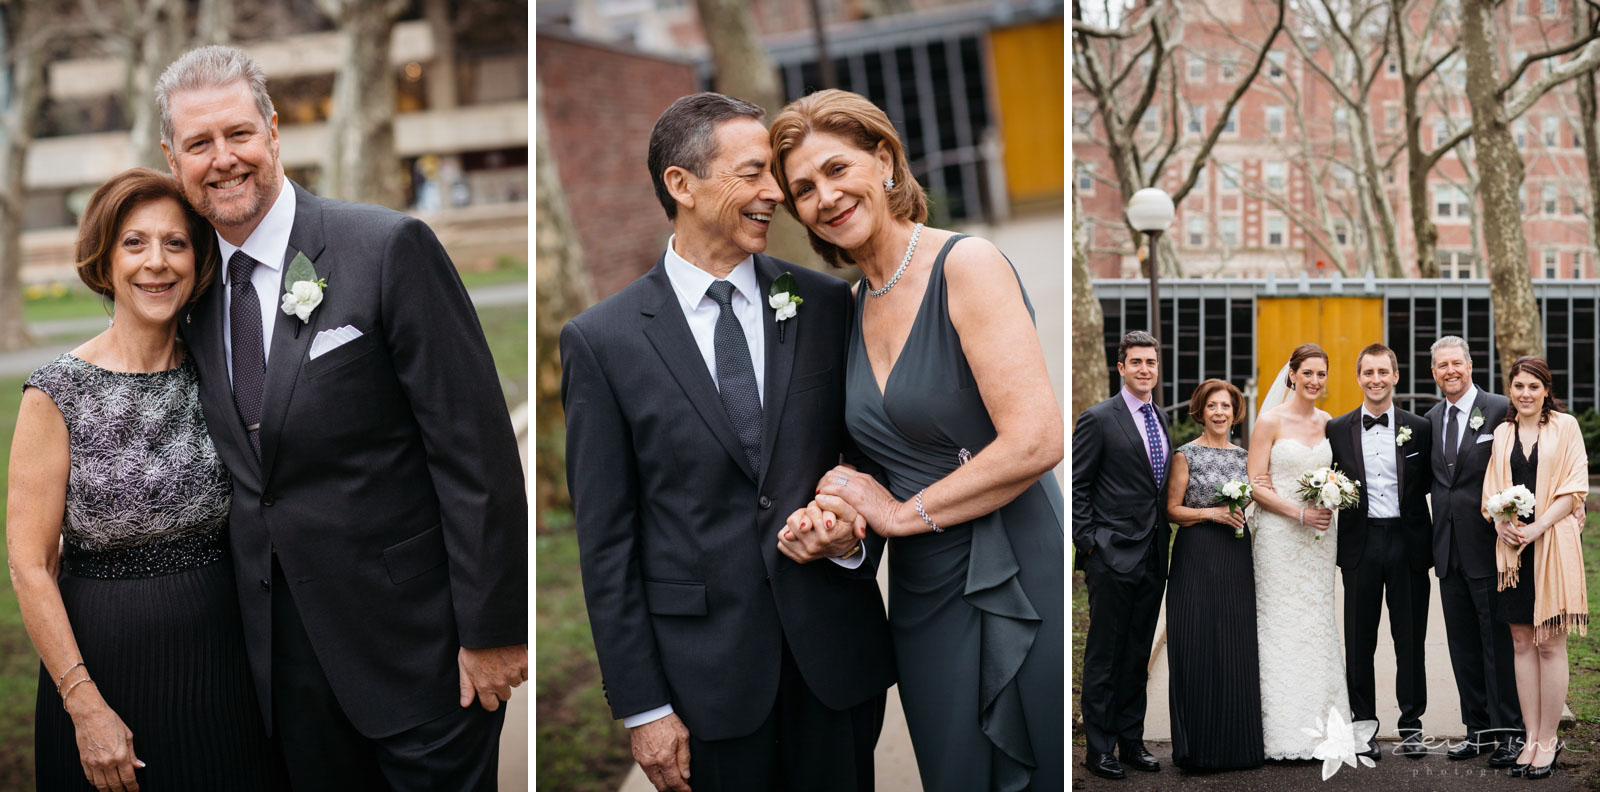 Casual and posed intimate family portraits in front of the church after the ceremony, natural light.